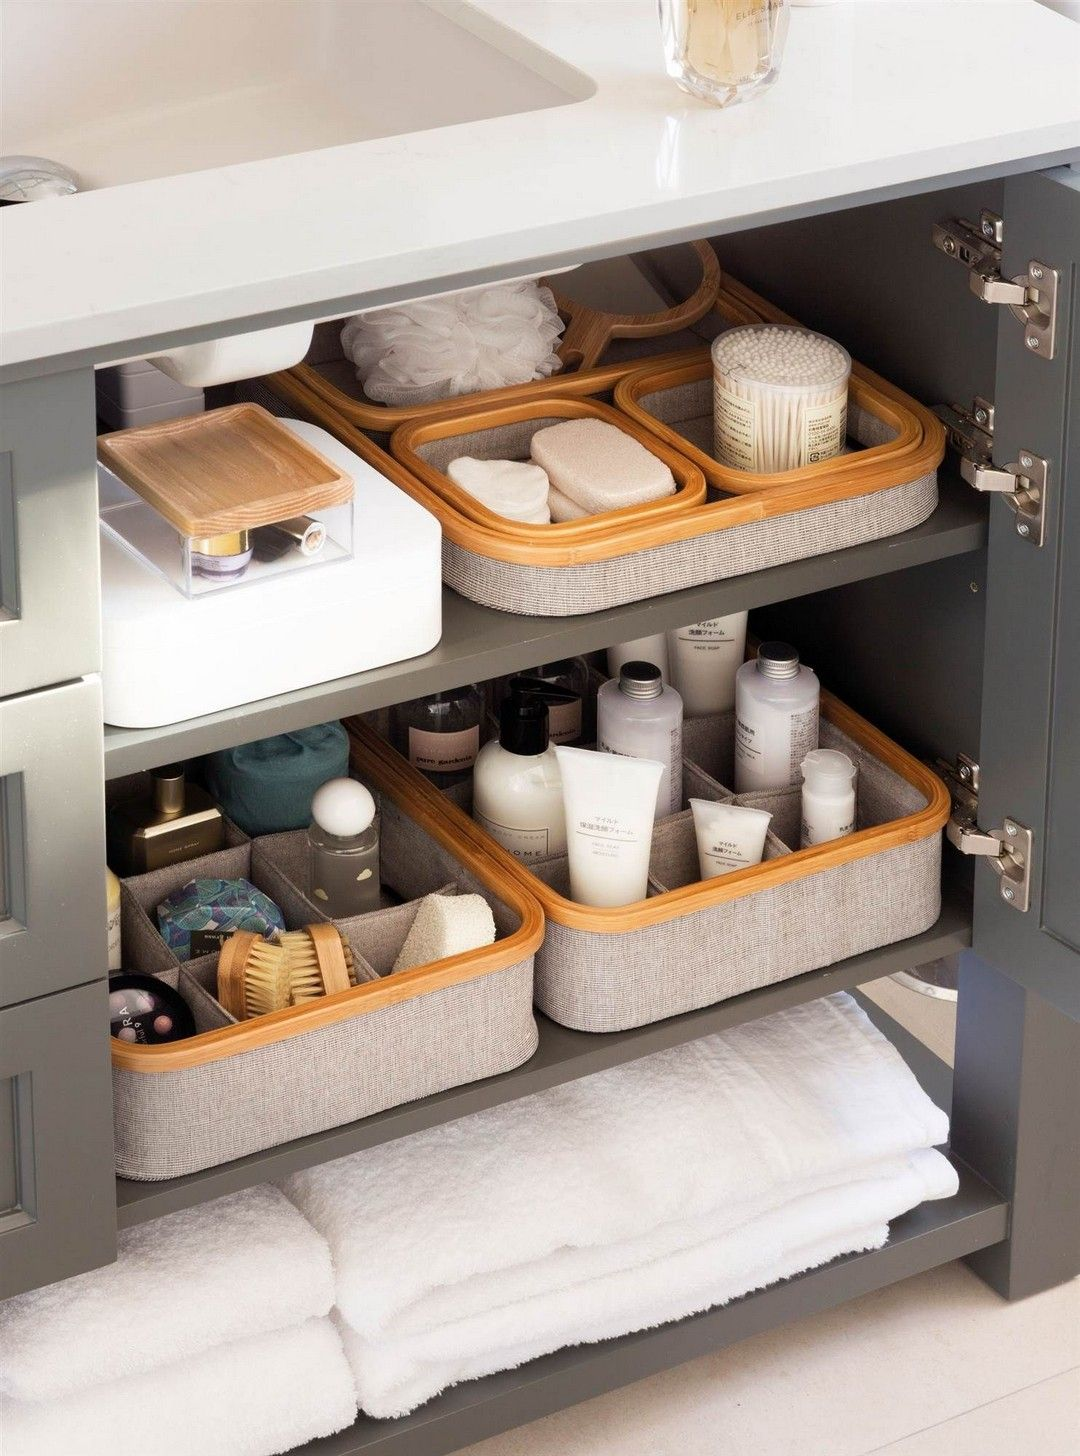 Here's How I Organize My Bathroom Cupboard And Under The Sink!